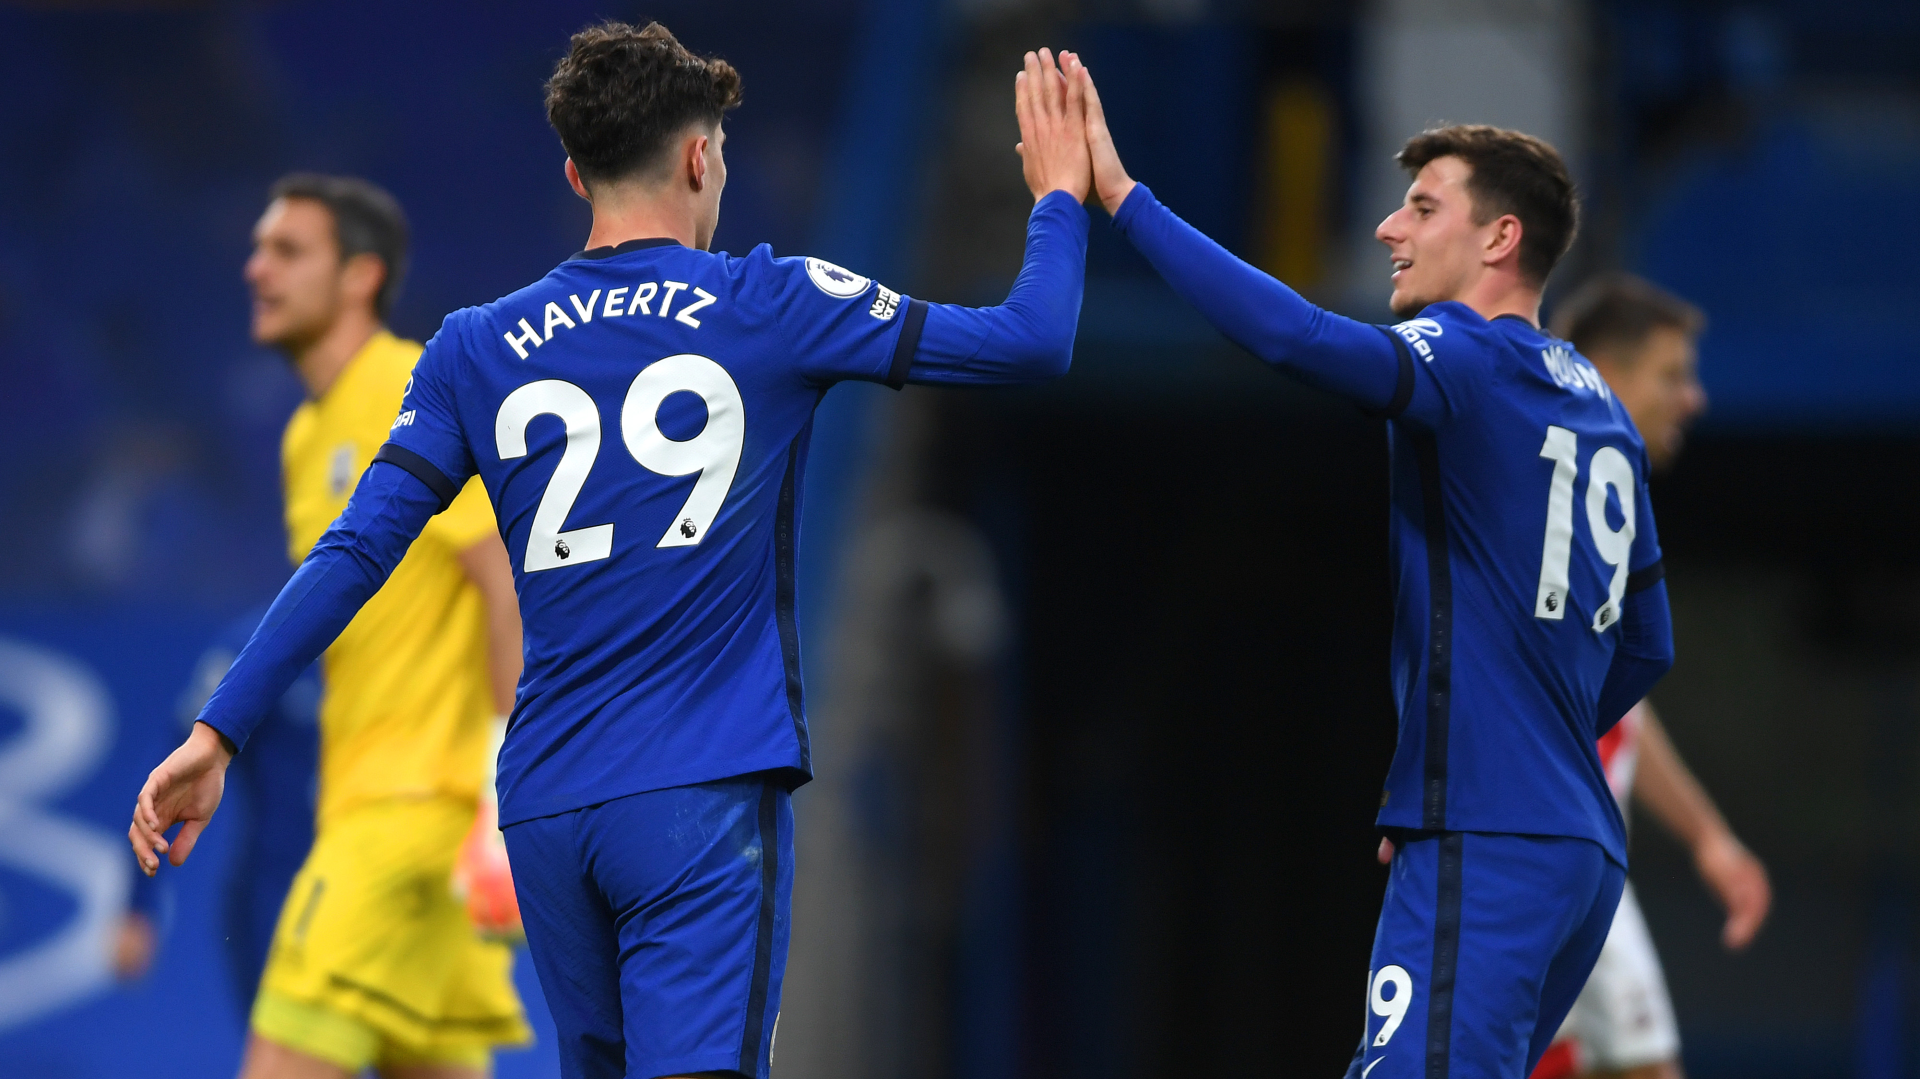 'He grabs my face' - Mount on first encounter with future Chelsea team-mate Havertz